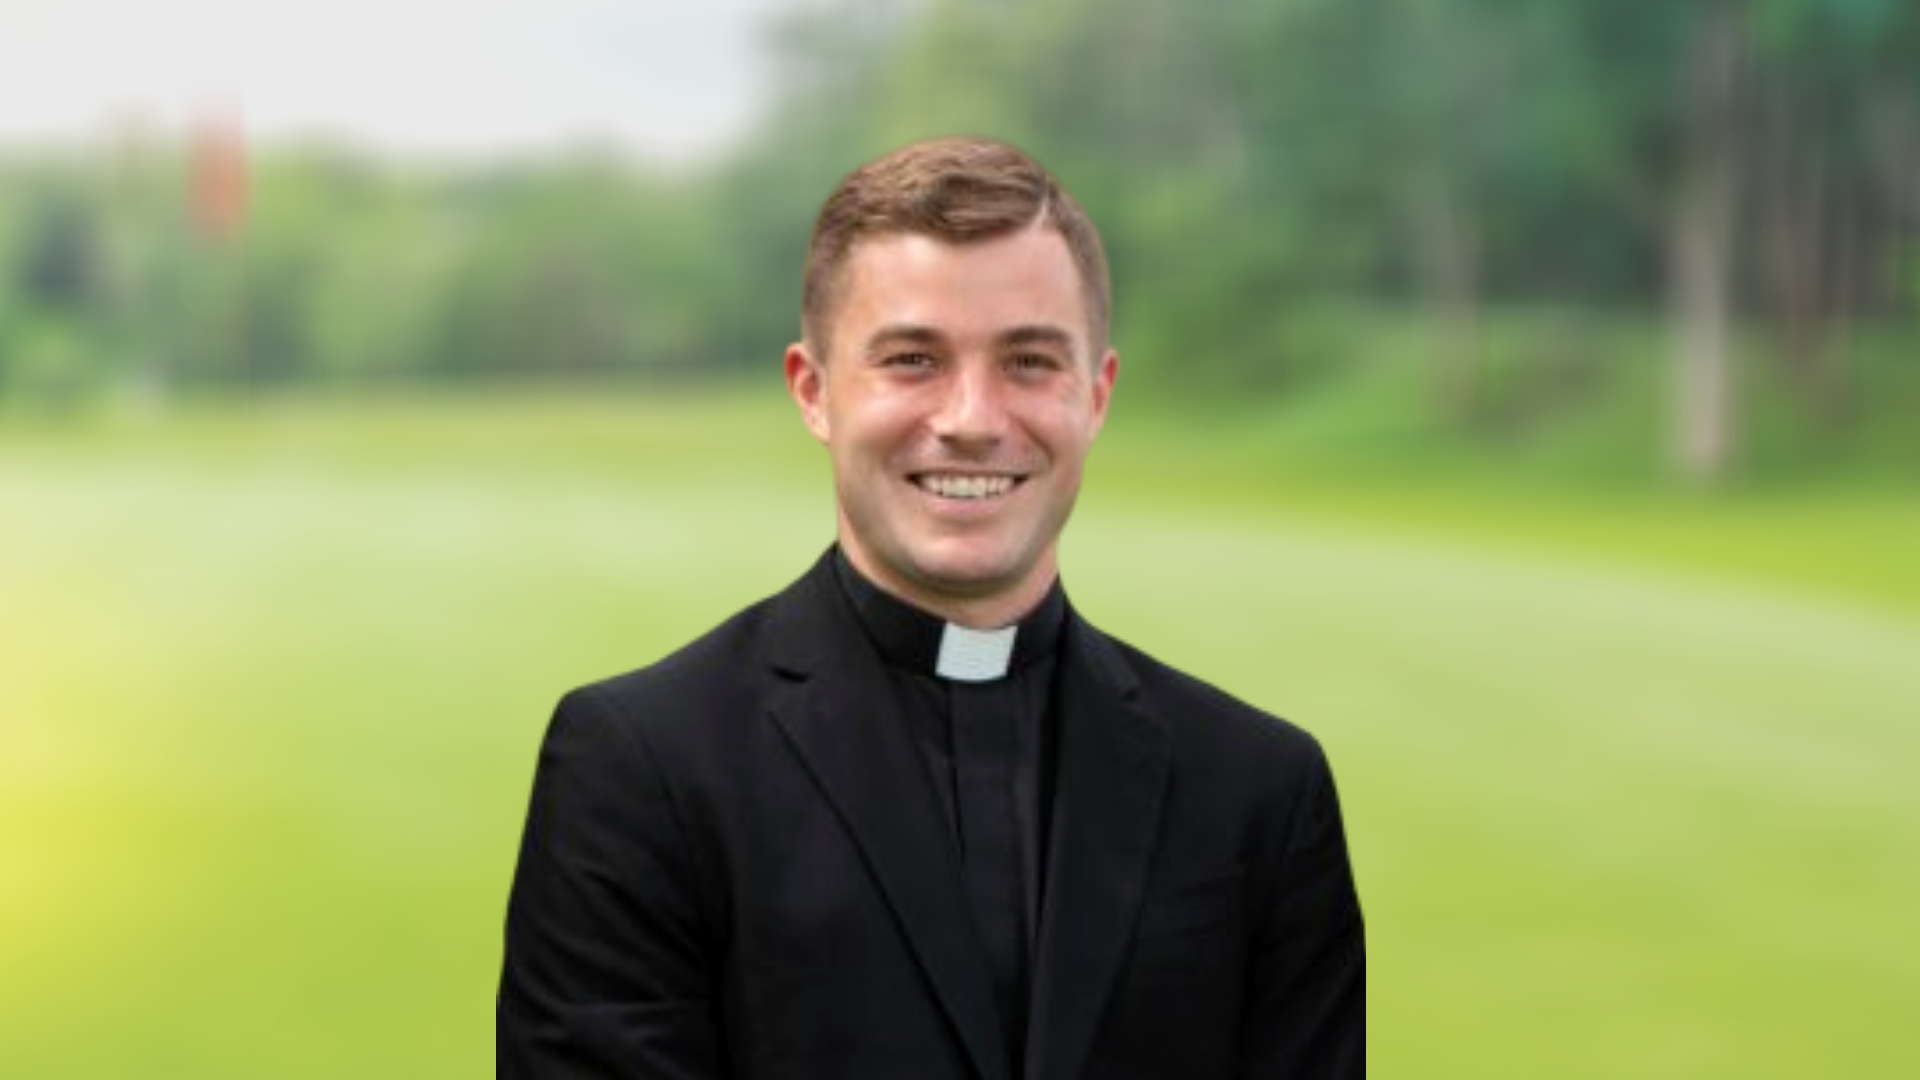 Ordination of soon-to-be Fr. Connor Penn